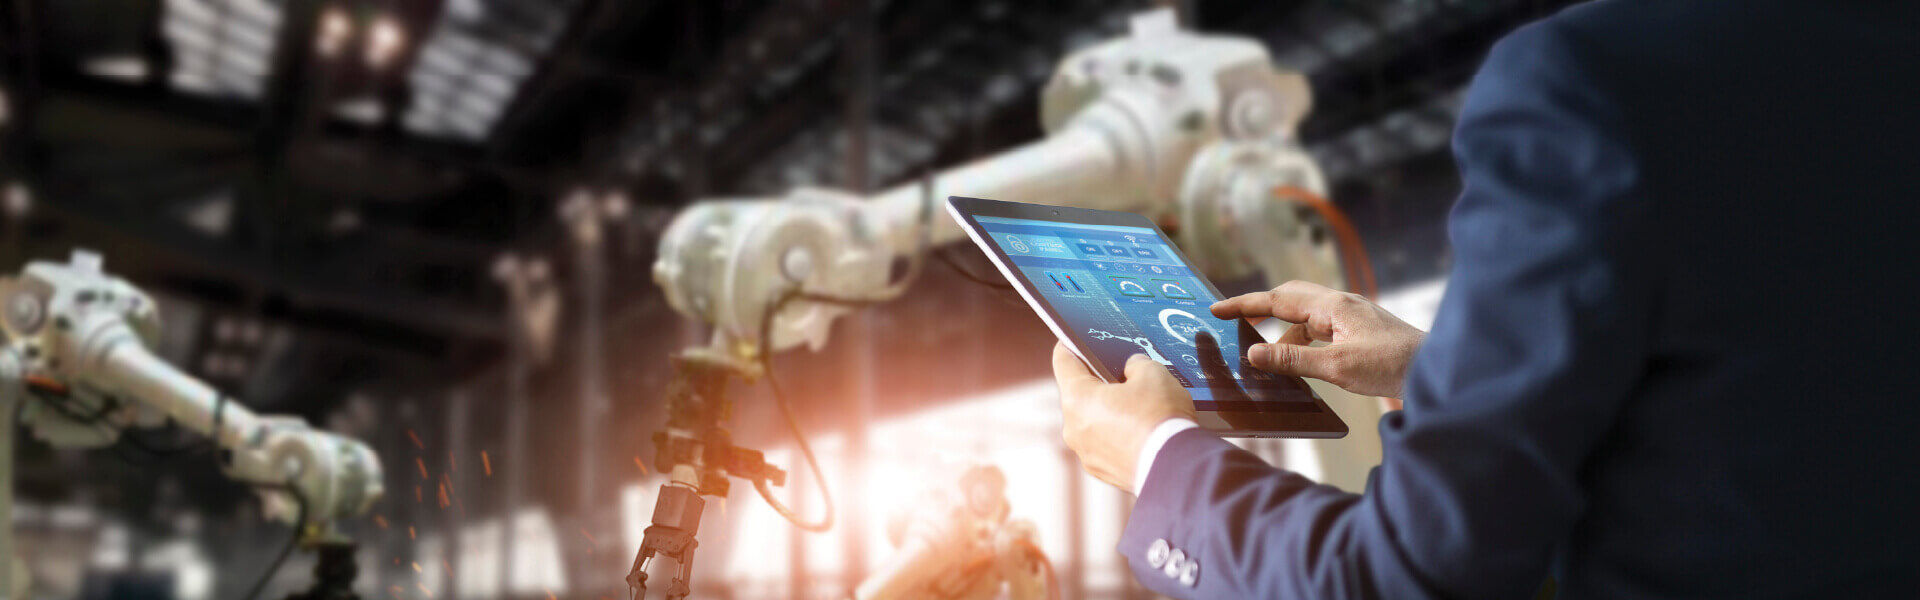 Using AI to Optimize IoT Data in Quality Control for a Global Heavy Vehicle Manufacturer